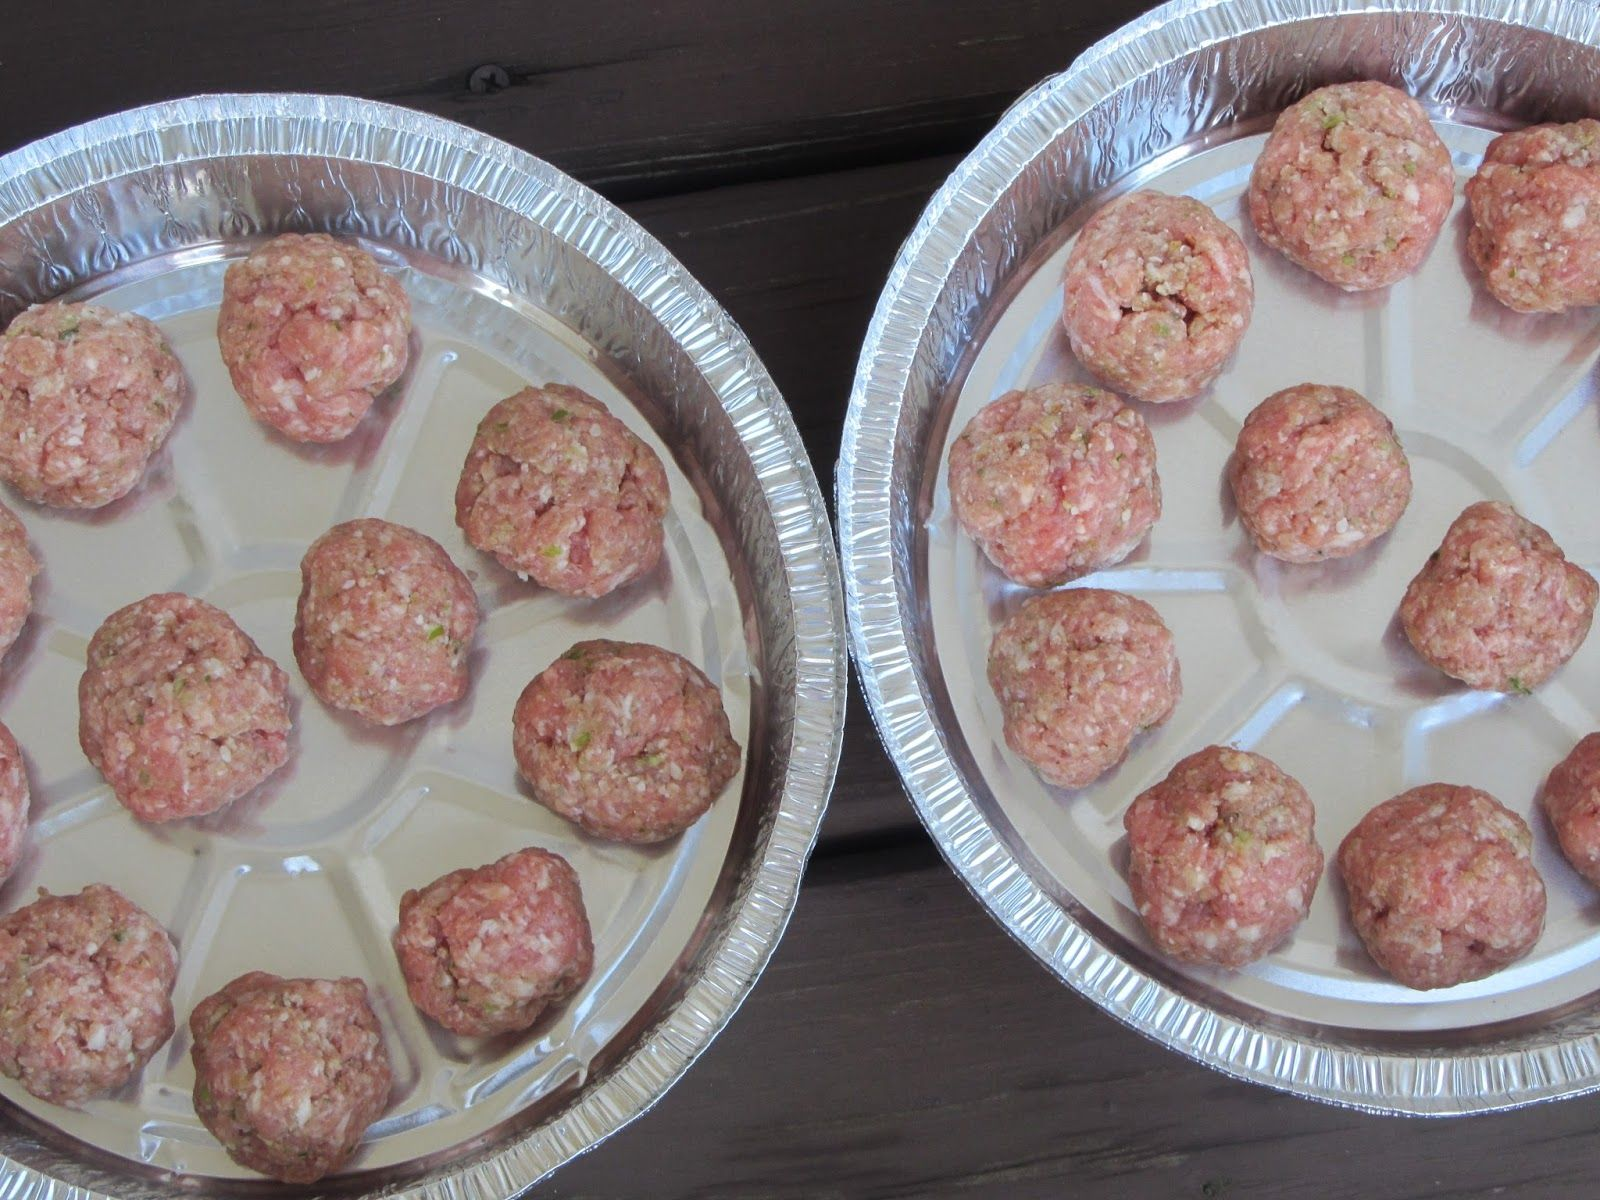 Day #3 Ground pork pesto meatballs. Freeze beautifully, make for a great main dish or divide into smaller portions to use in lunches throughout the week.